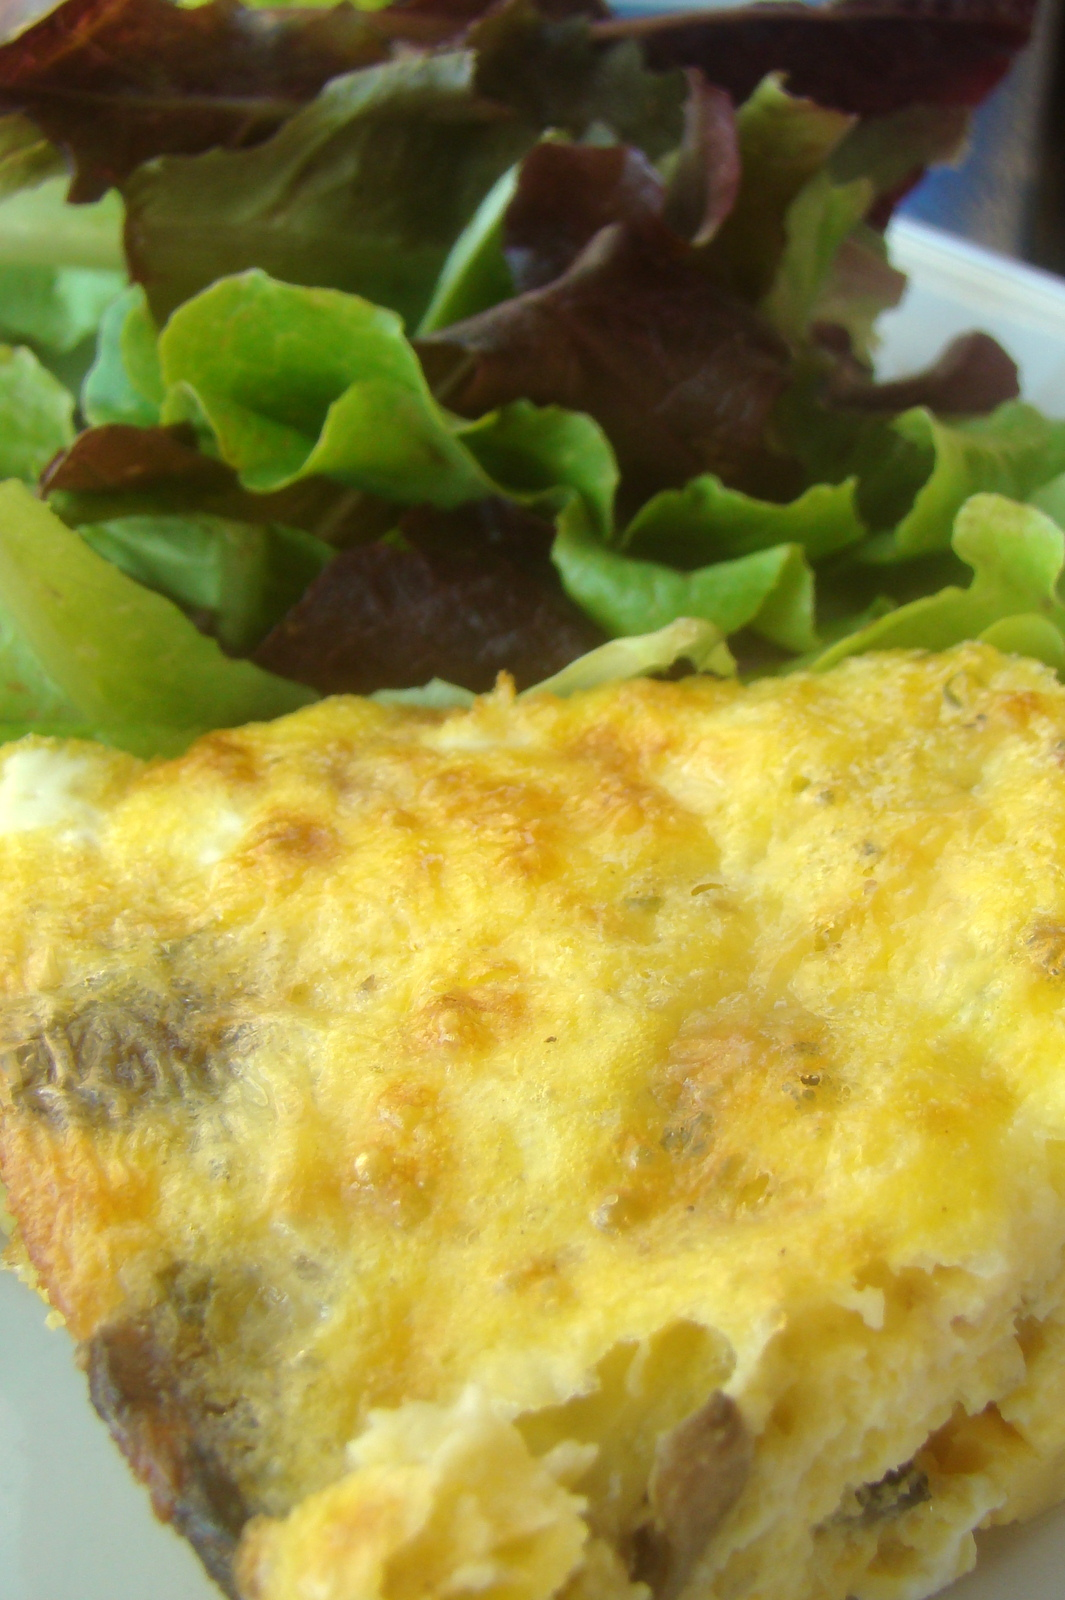 ... : Mushroom and Cheddar Crustless Quiche (GAPS : grain-free : primal